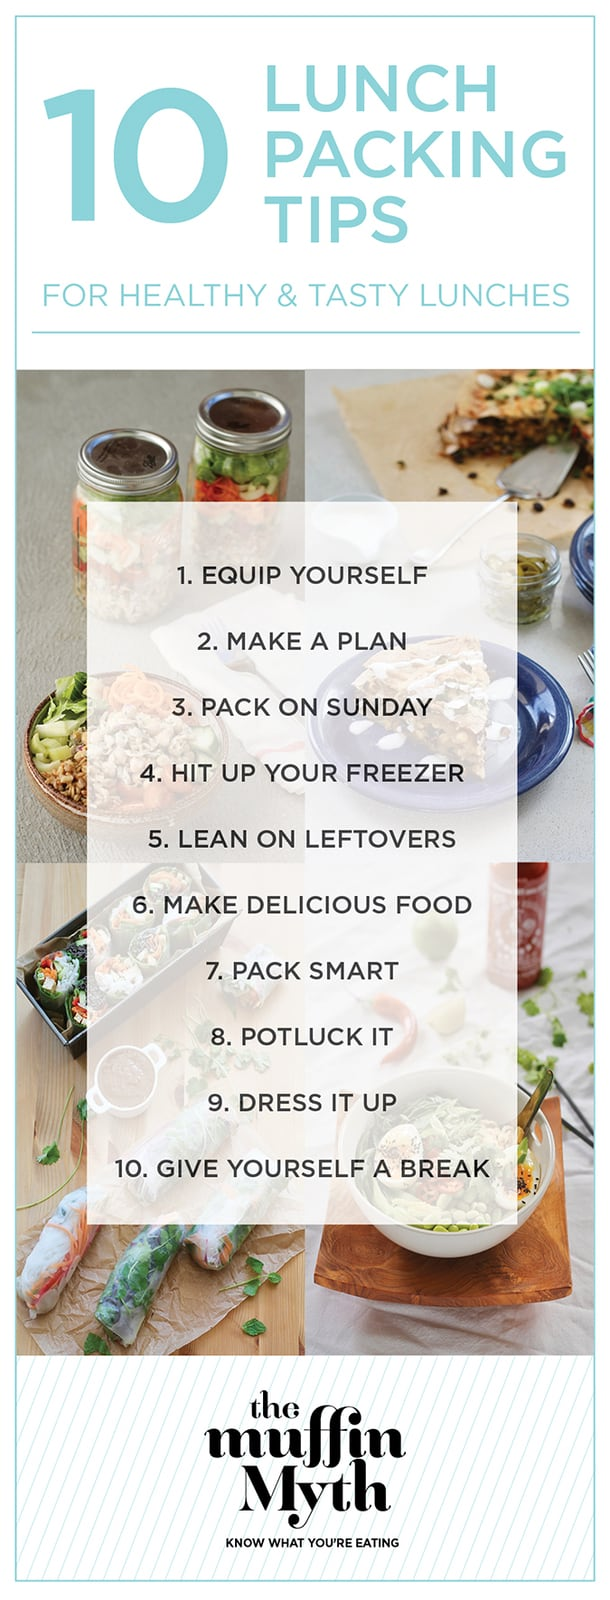 10 lunch packing tips for healthy, tasty, and budget-friendly lunches